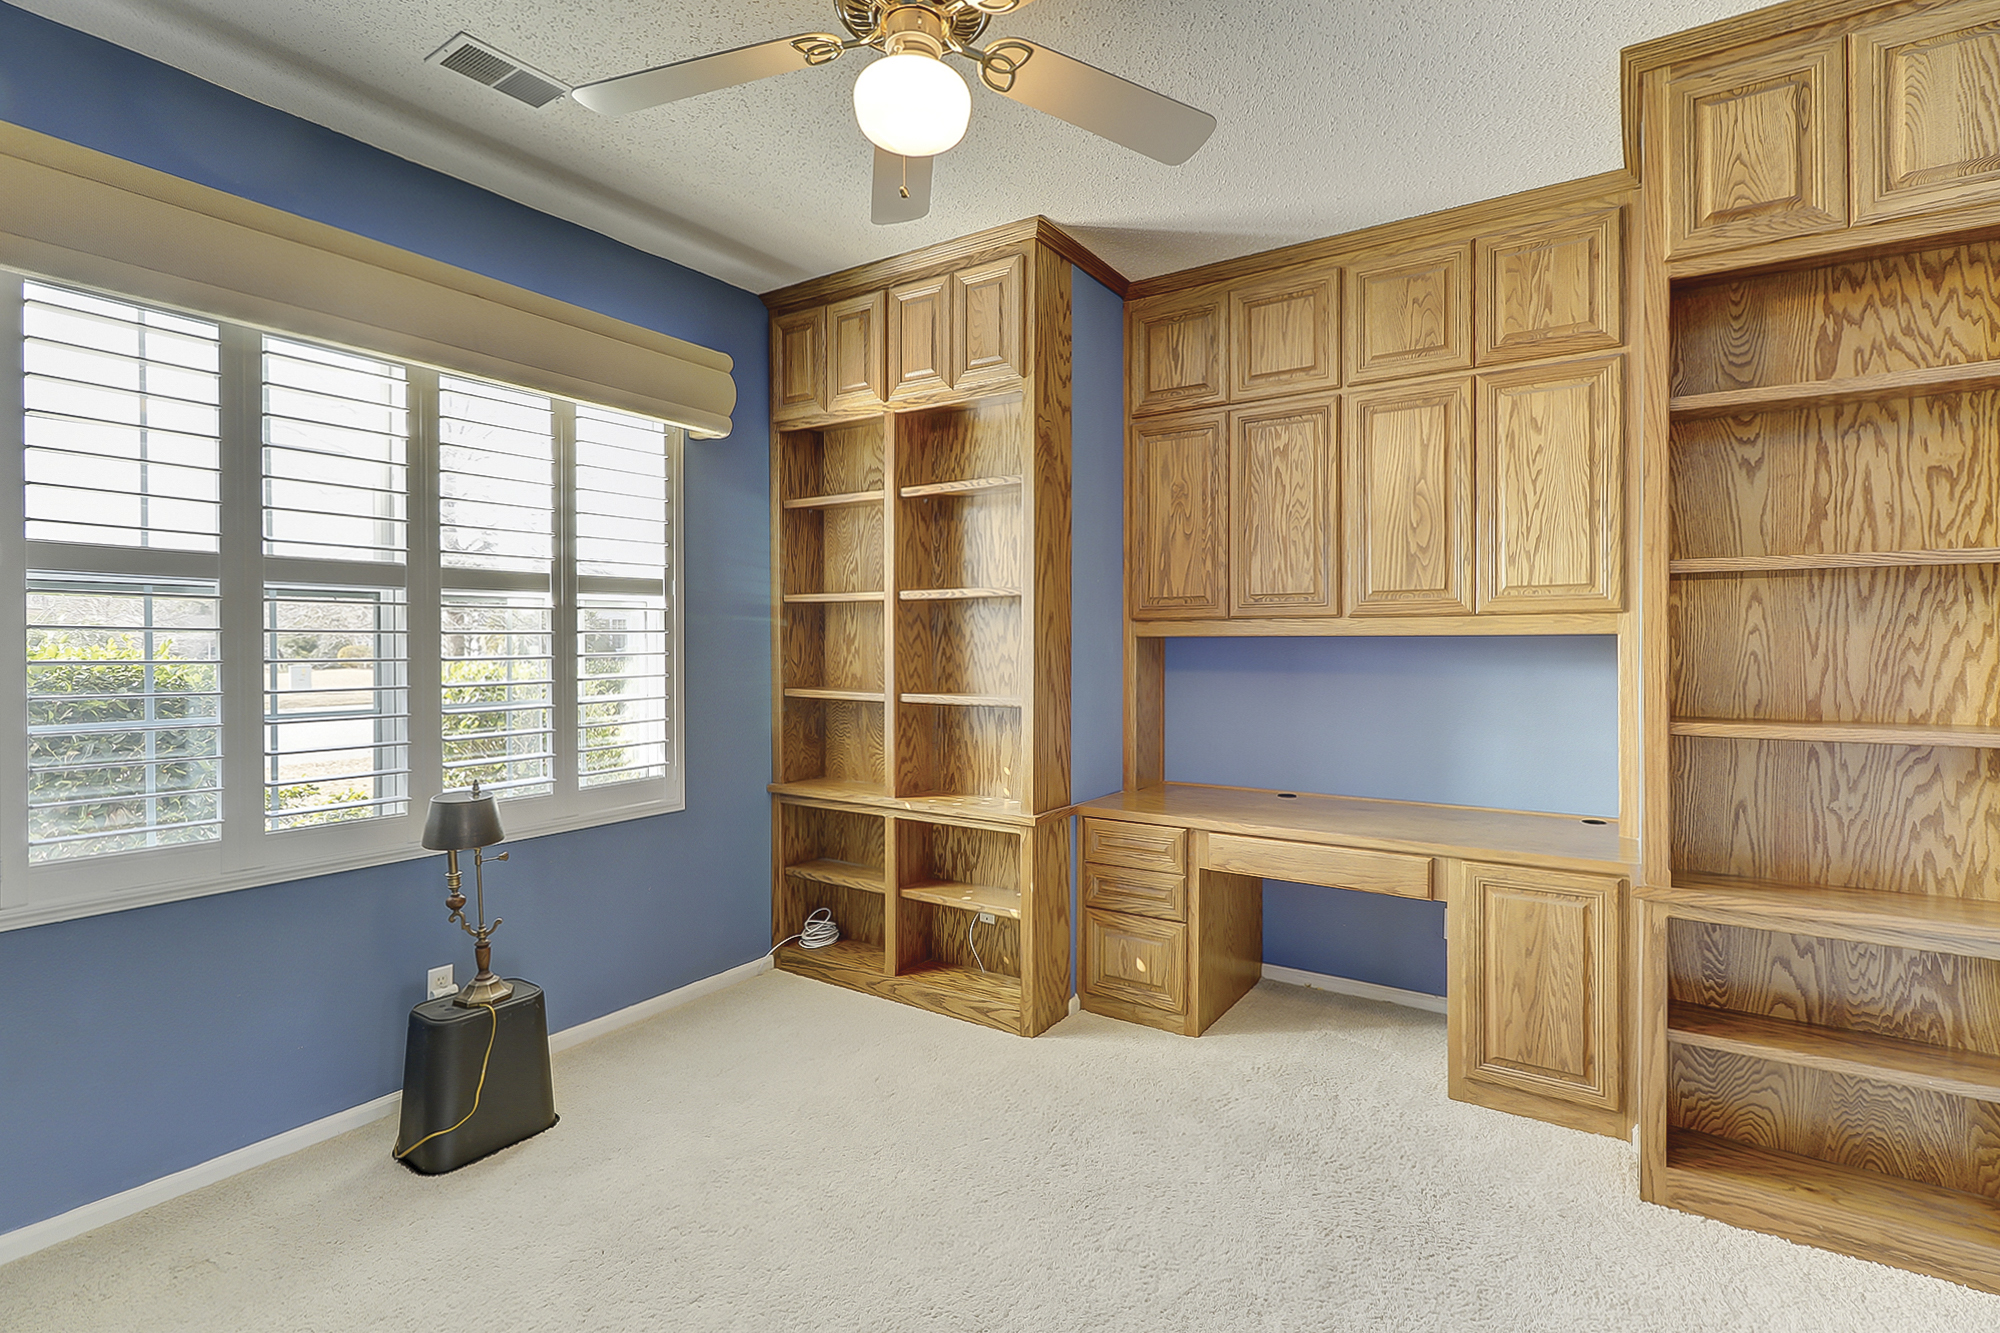 The Den is fitted with custom Oak Built-ins and desk. There is high quality carpet throughout.